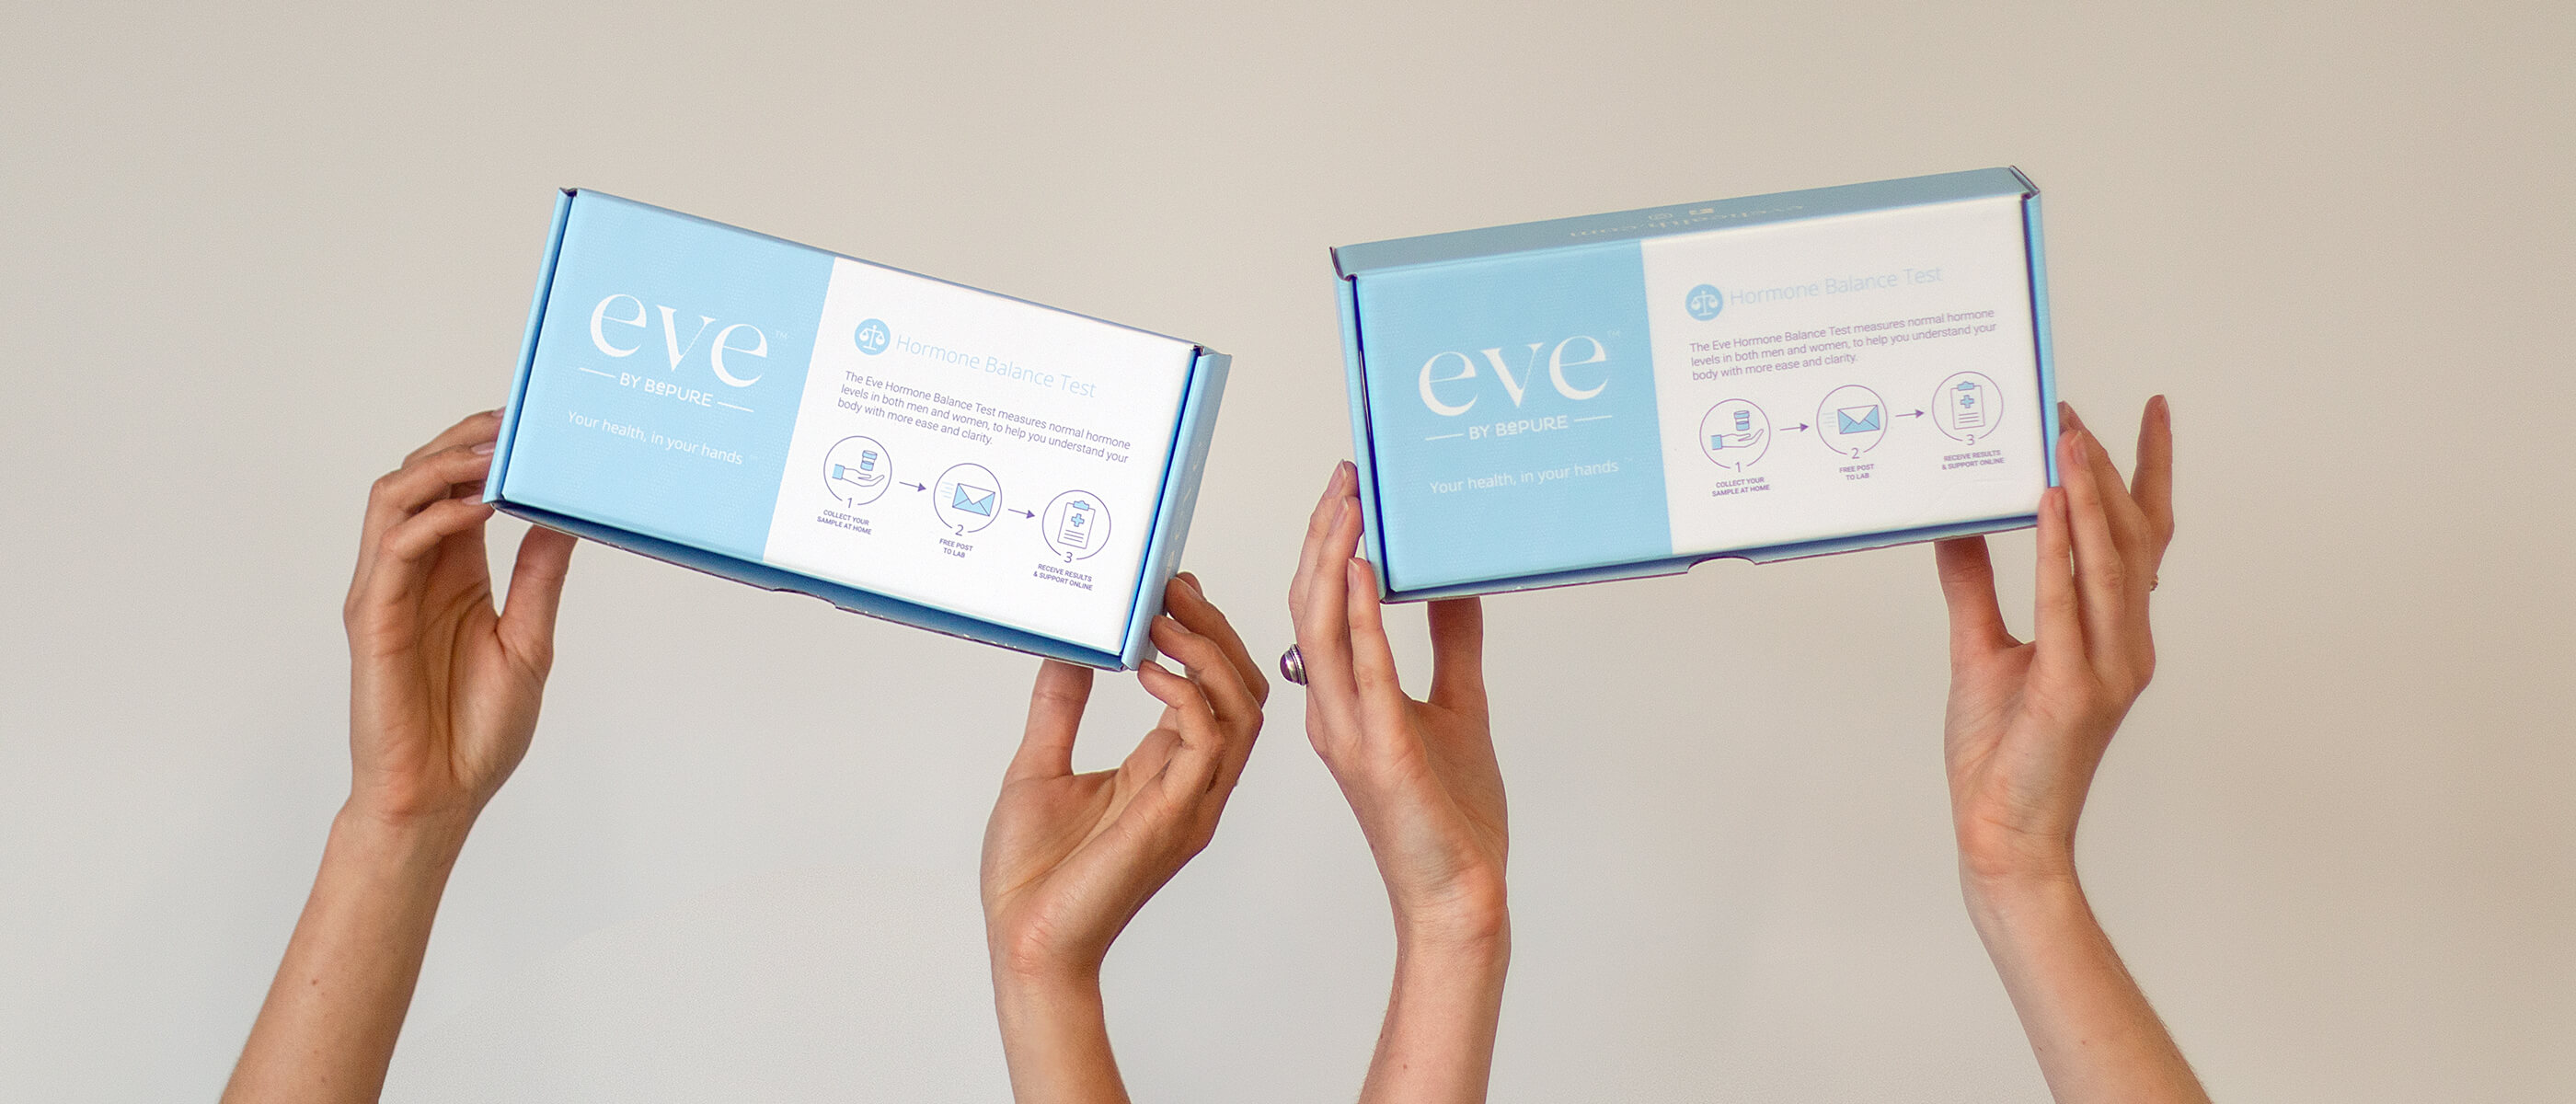 About Eve - Eve's Story, Hormone Health and At-home Health Testing